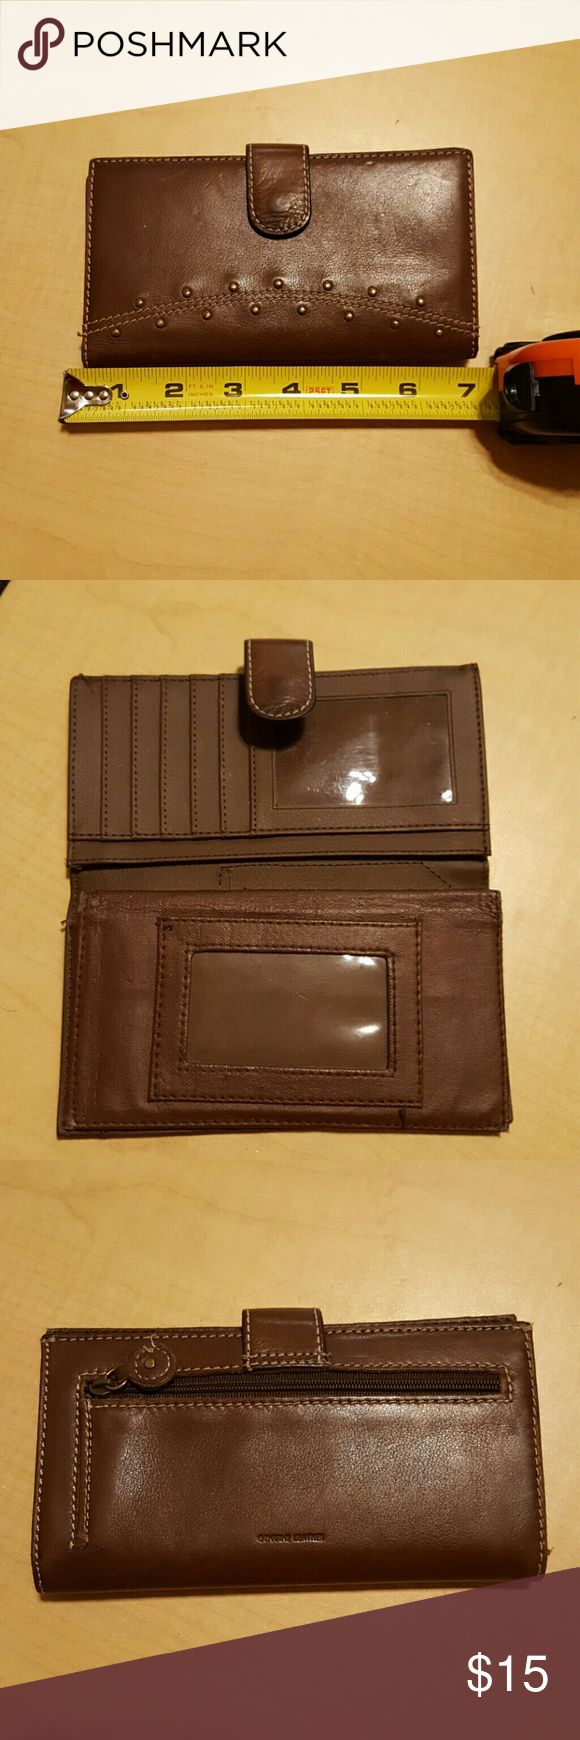 Brown leather wallet Brown leather wallet in great condition. Not sure what brand it is just kind of like a generic leather wallet. Bags Wallets